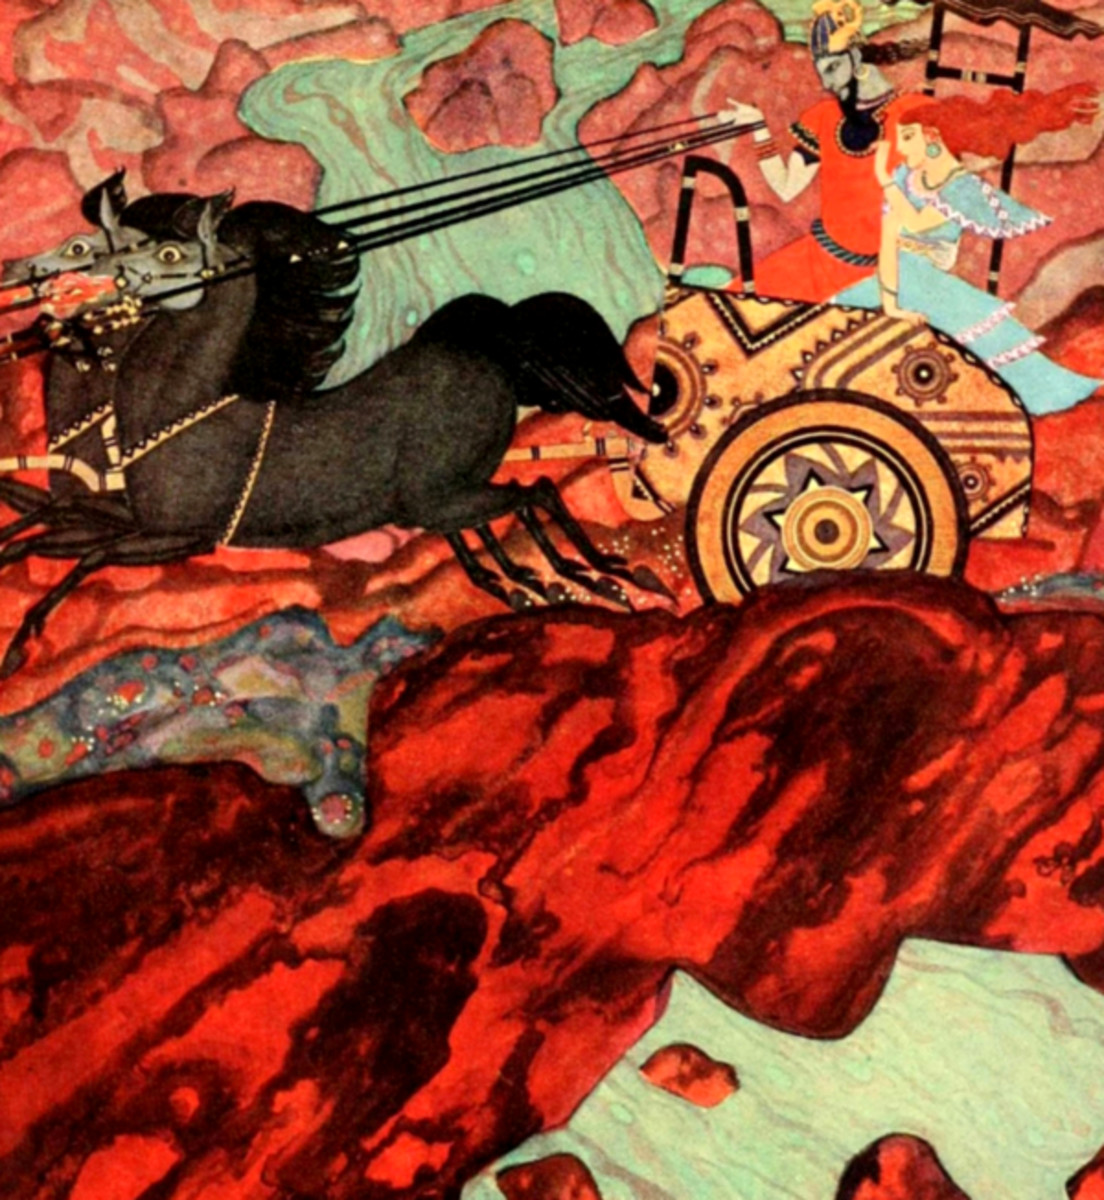 "Here we show a portion of 'On went the chariot ...' - it is from the suite by Edmund Dulac published in ""Tanglewood Tales"" (1918)."